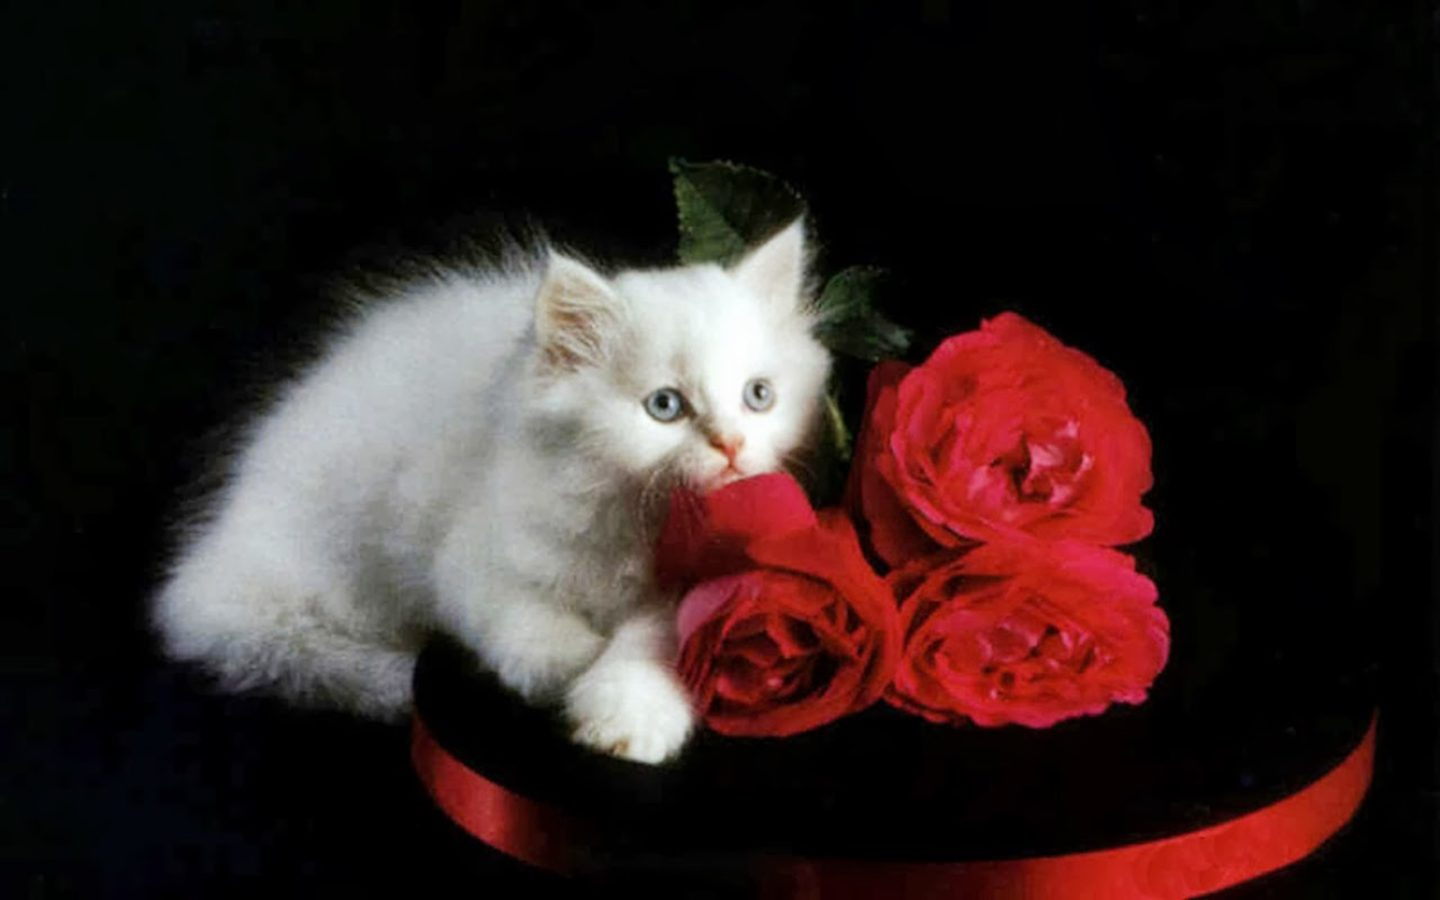 Wallpaper Full Hd 1080p 3d White Kitten And Red Roses Kittens Wallpapers13 Com